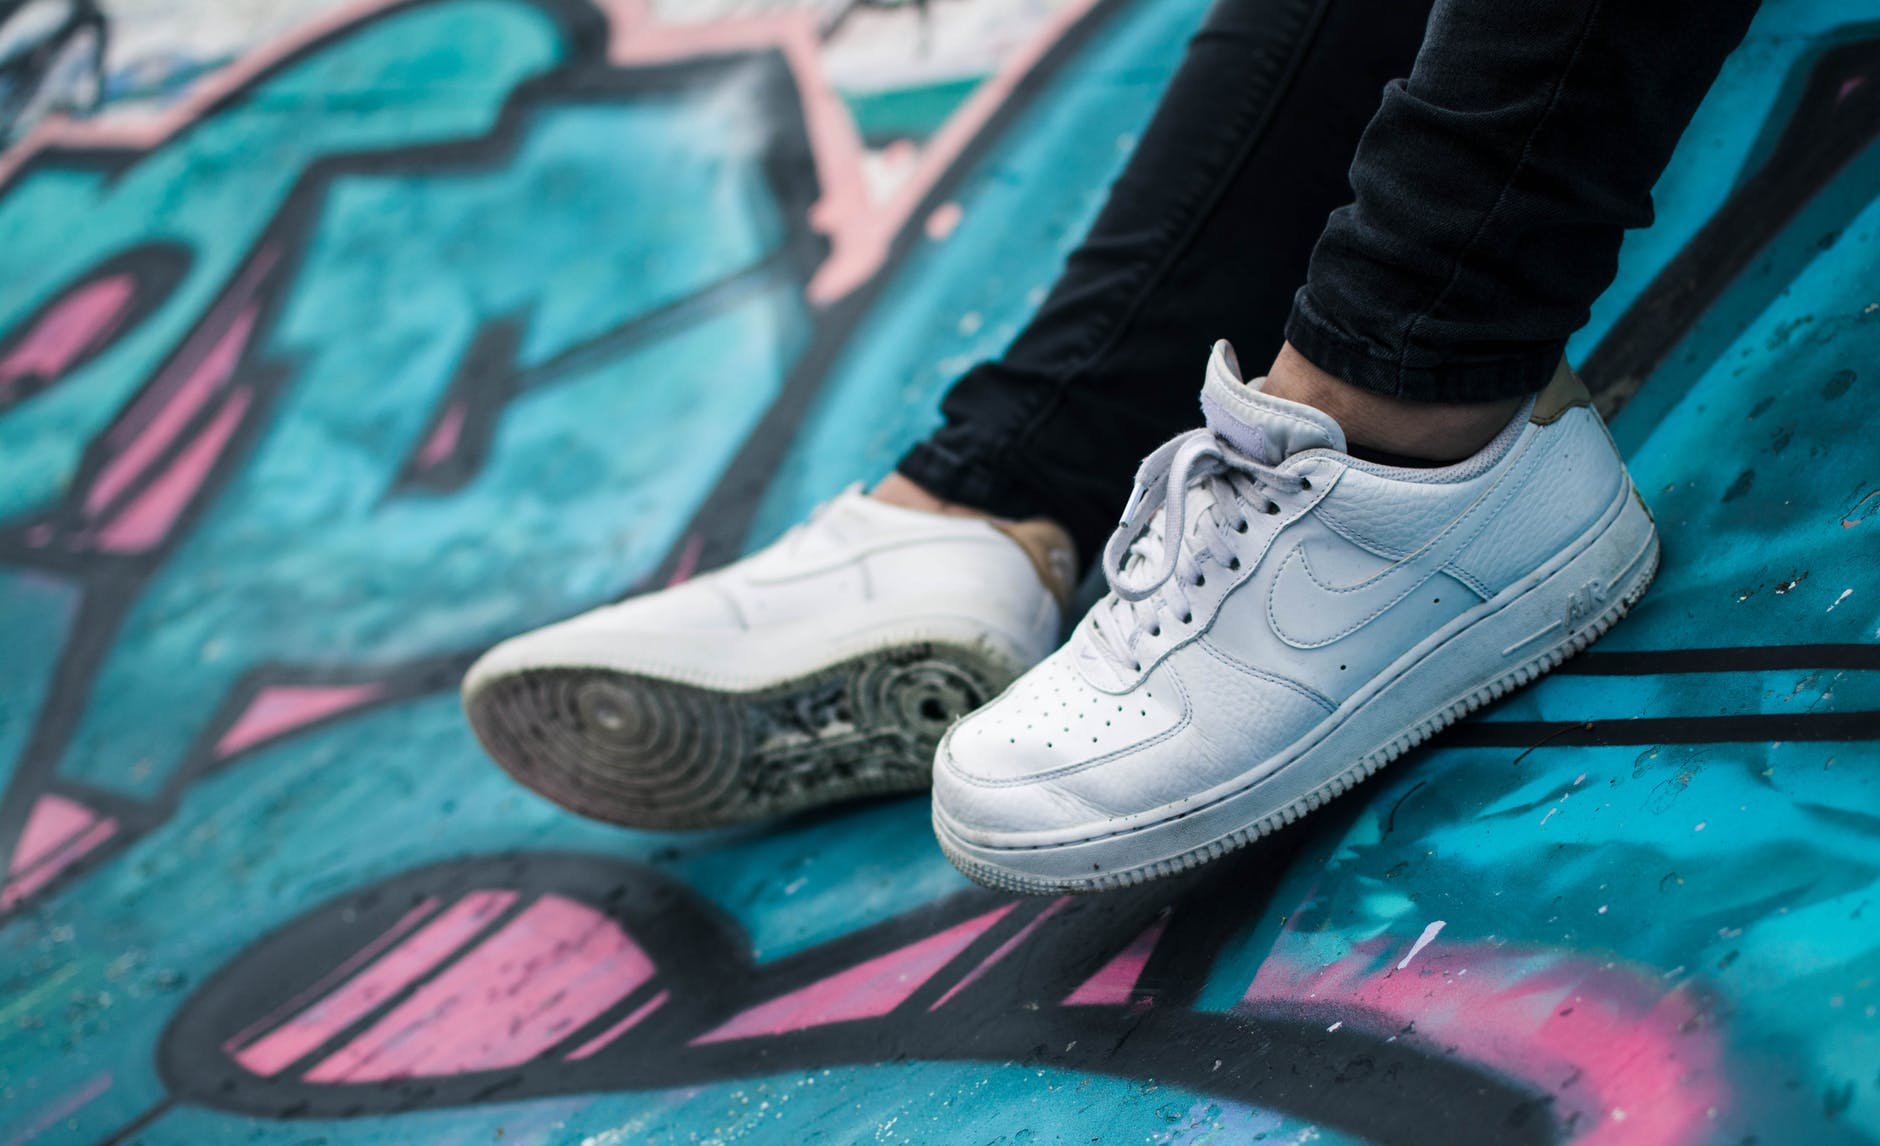 white sneakers on blue and pink graffiti wall